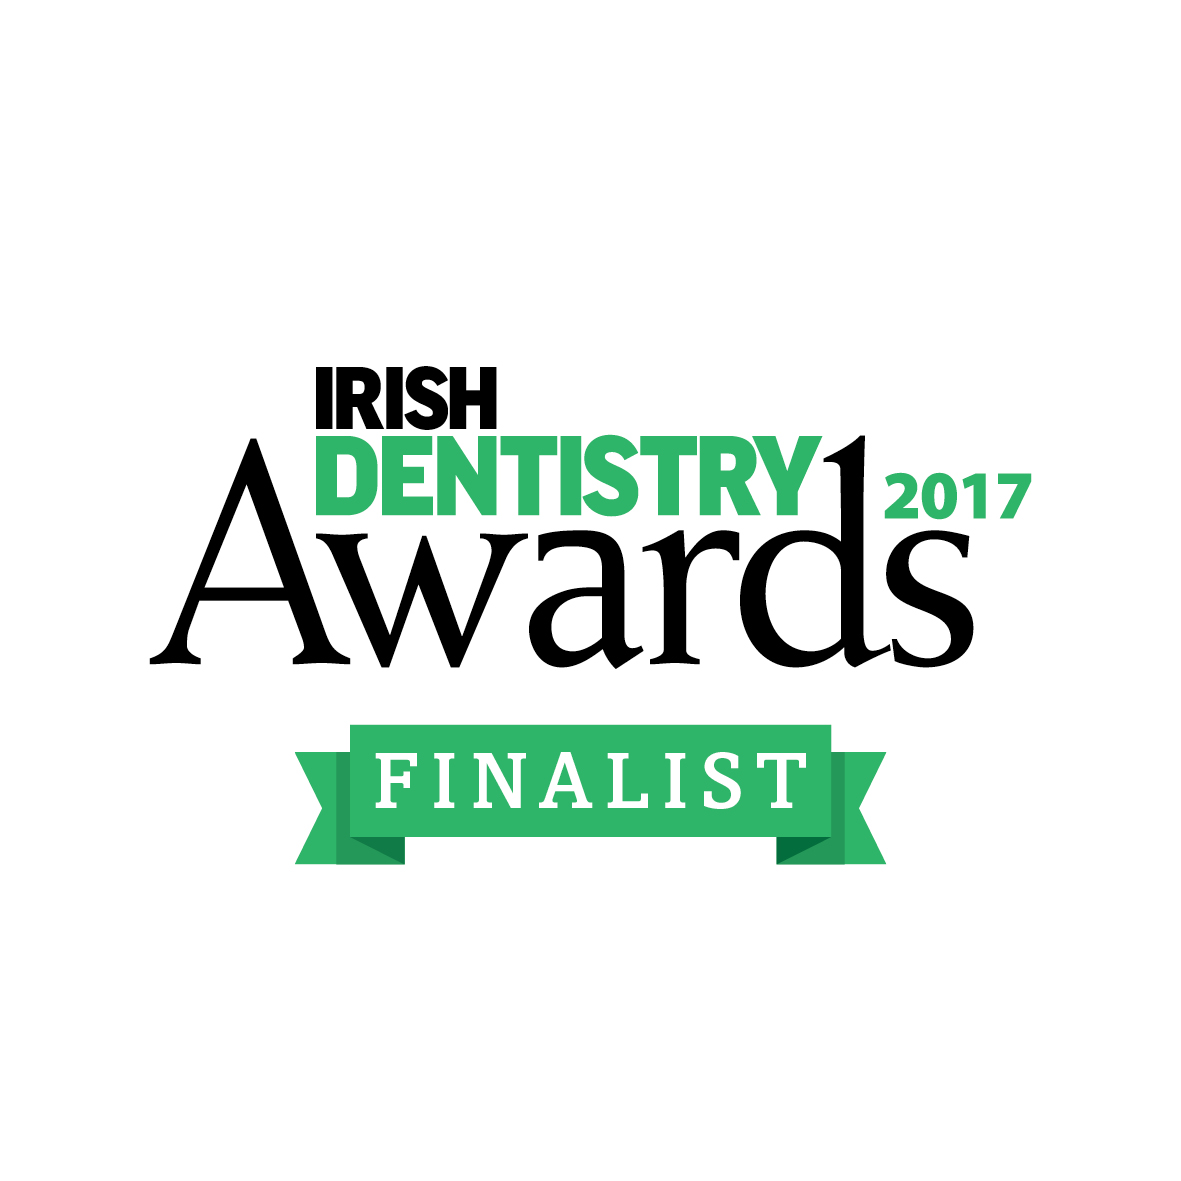 IRISH DENTISTRY AWARDS 2017 FINALIST!